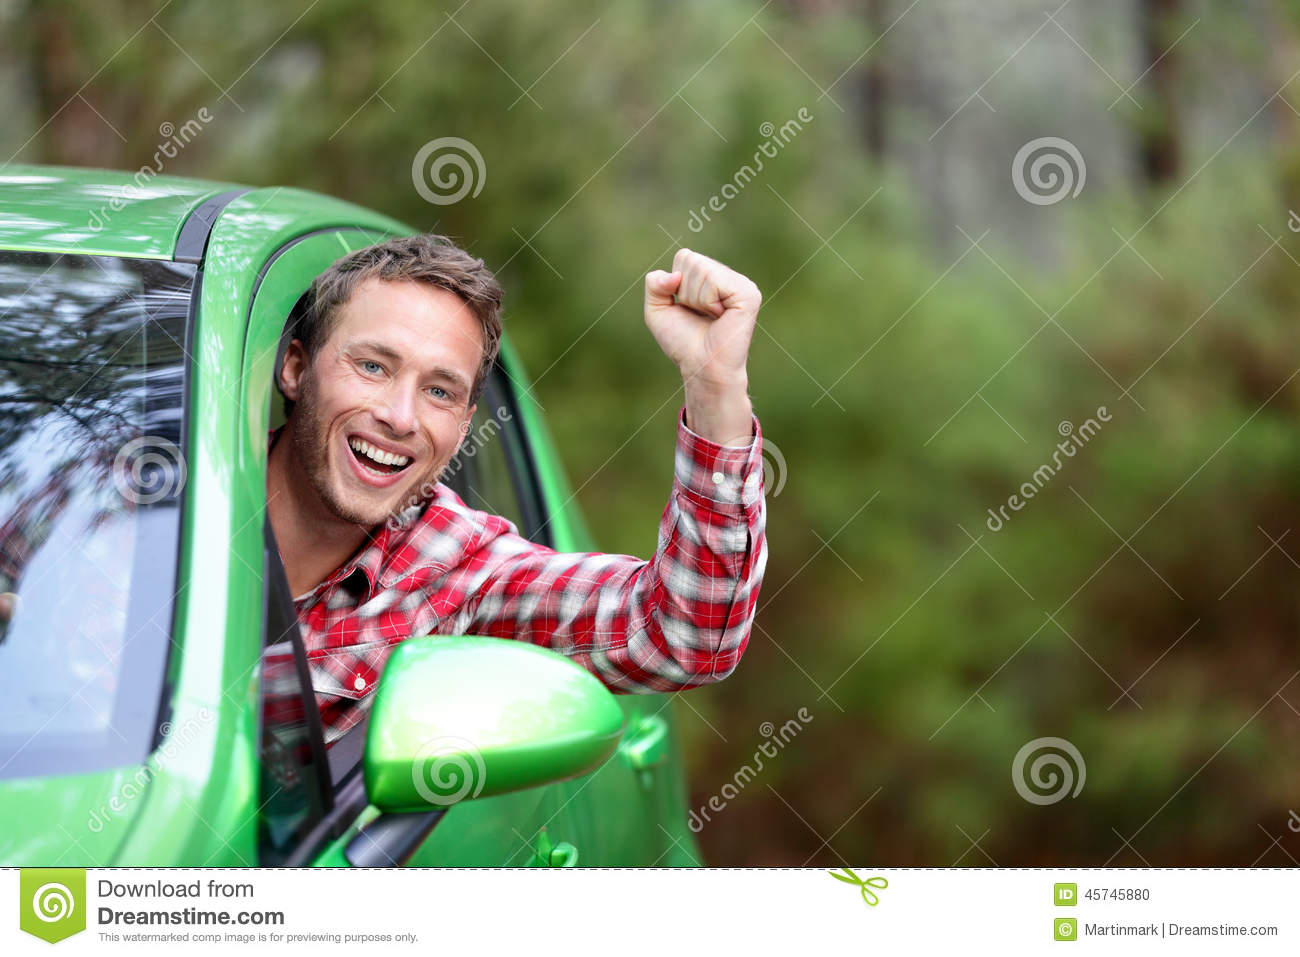 Green energy biofuel electric car driver happy stock photo for Cheerful nature